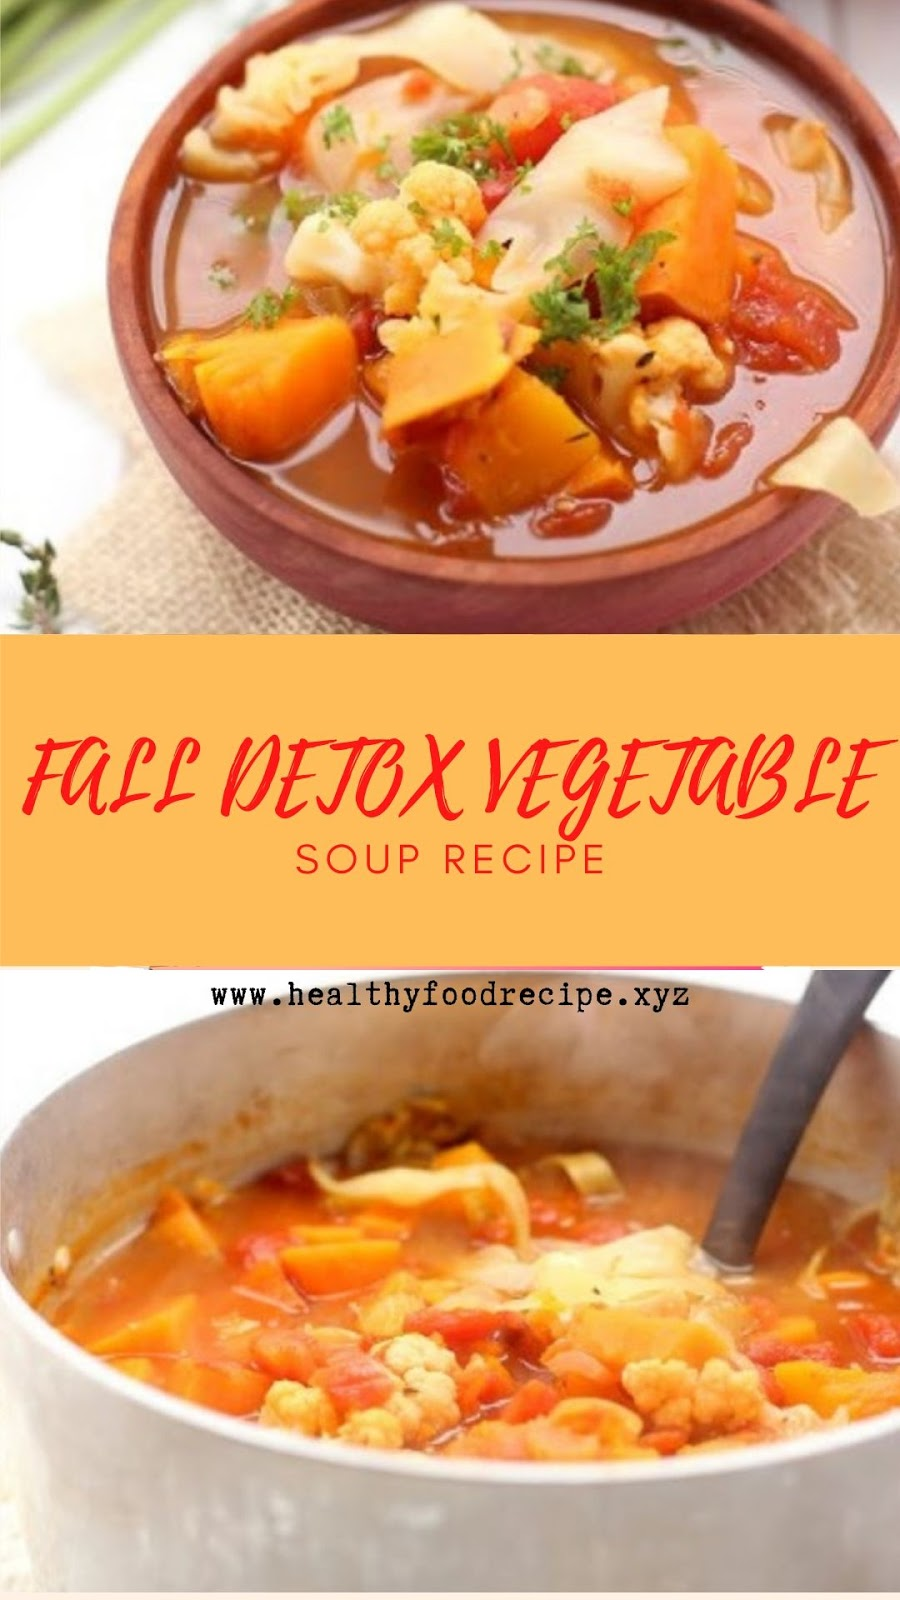 FALL DETOX VEGETABLE SOUP RECIPE